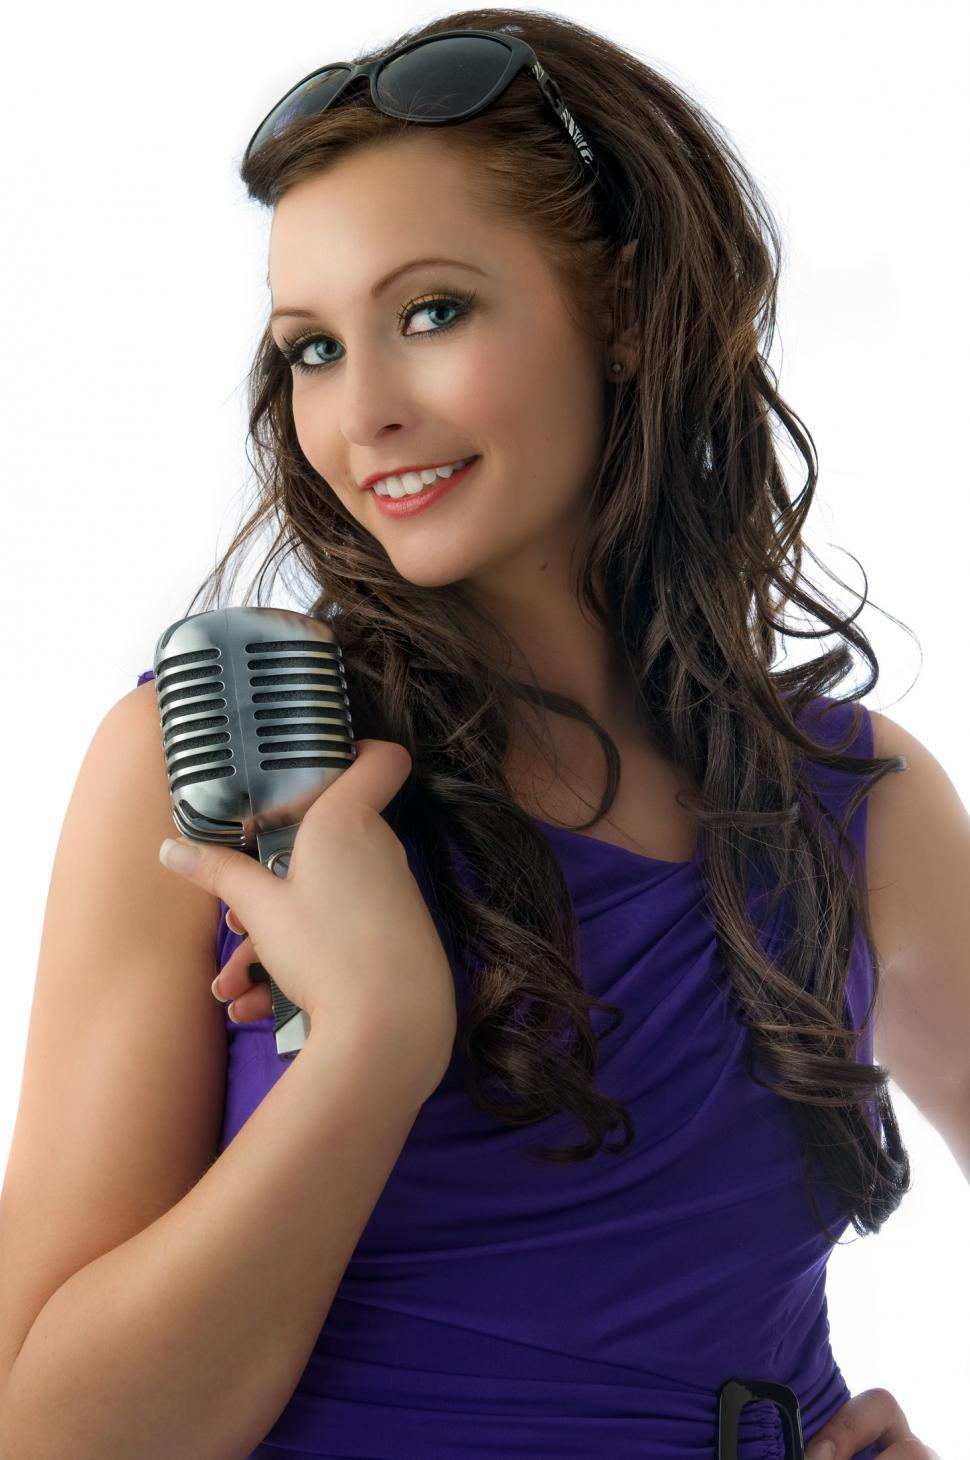 Download Free Stock HD Photo of Singer with microphone Online